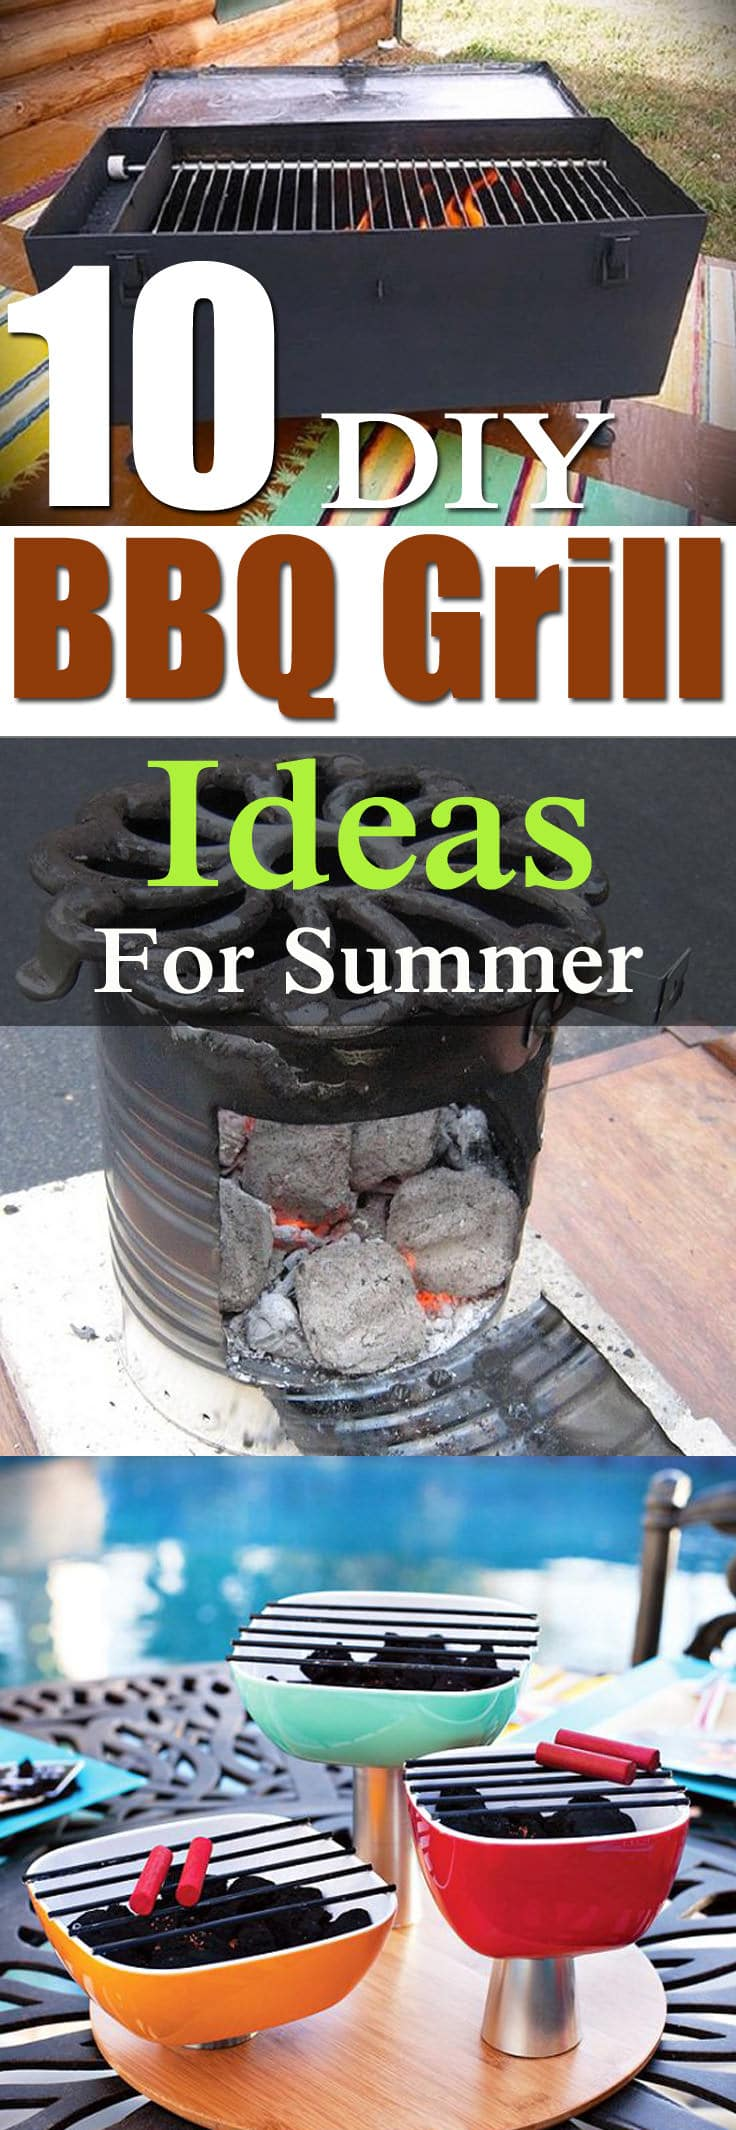 10 DIY BBQ Grill Ideas that are inexpensive and easy to follow for the summer, so that you can enjoy outdoor grilled recipes in your backyard or balcony!